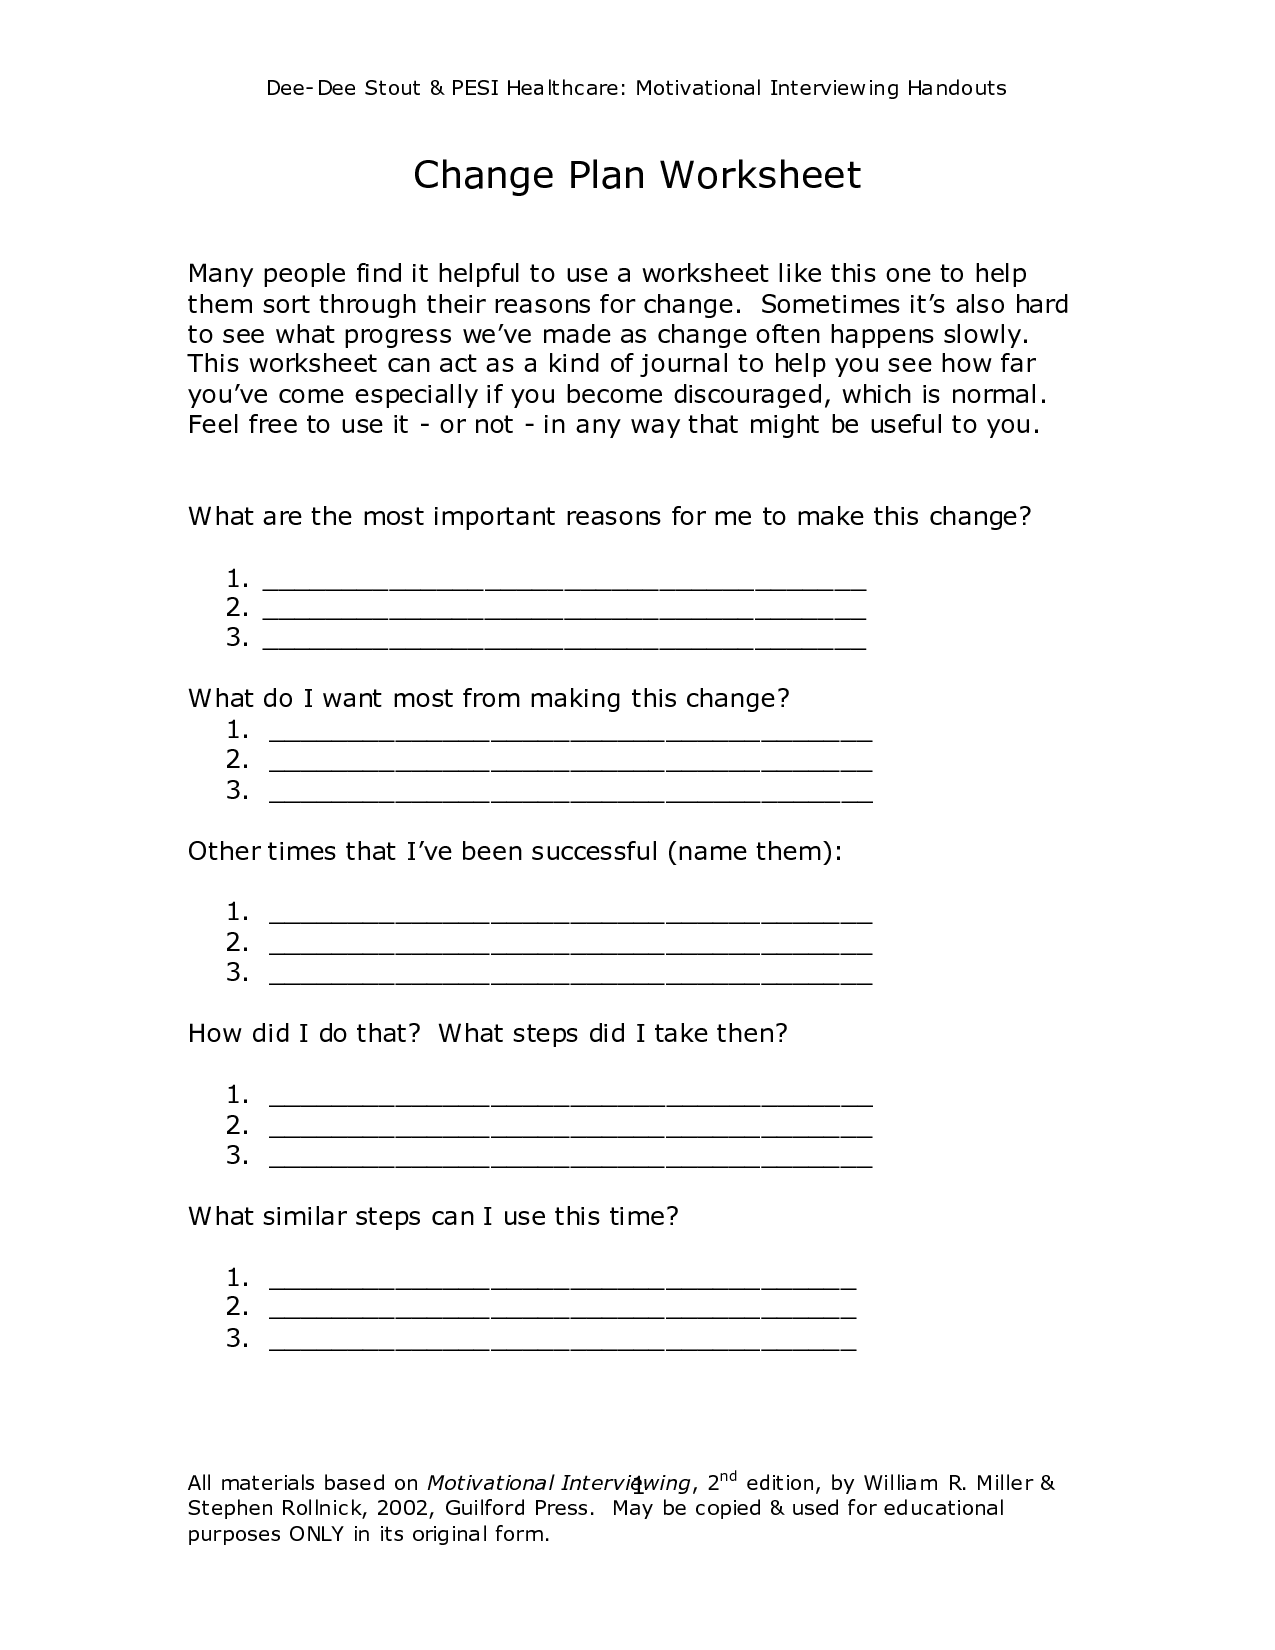 worksheet Change Plan Worksheet www worksheeto com postpic 2012 02 motivational interviewing stages dbt